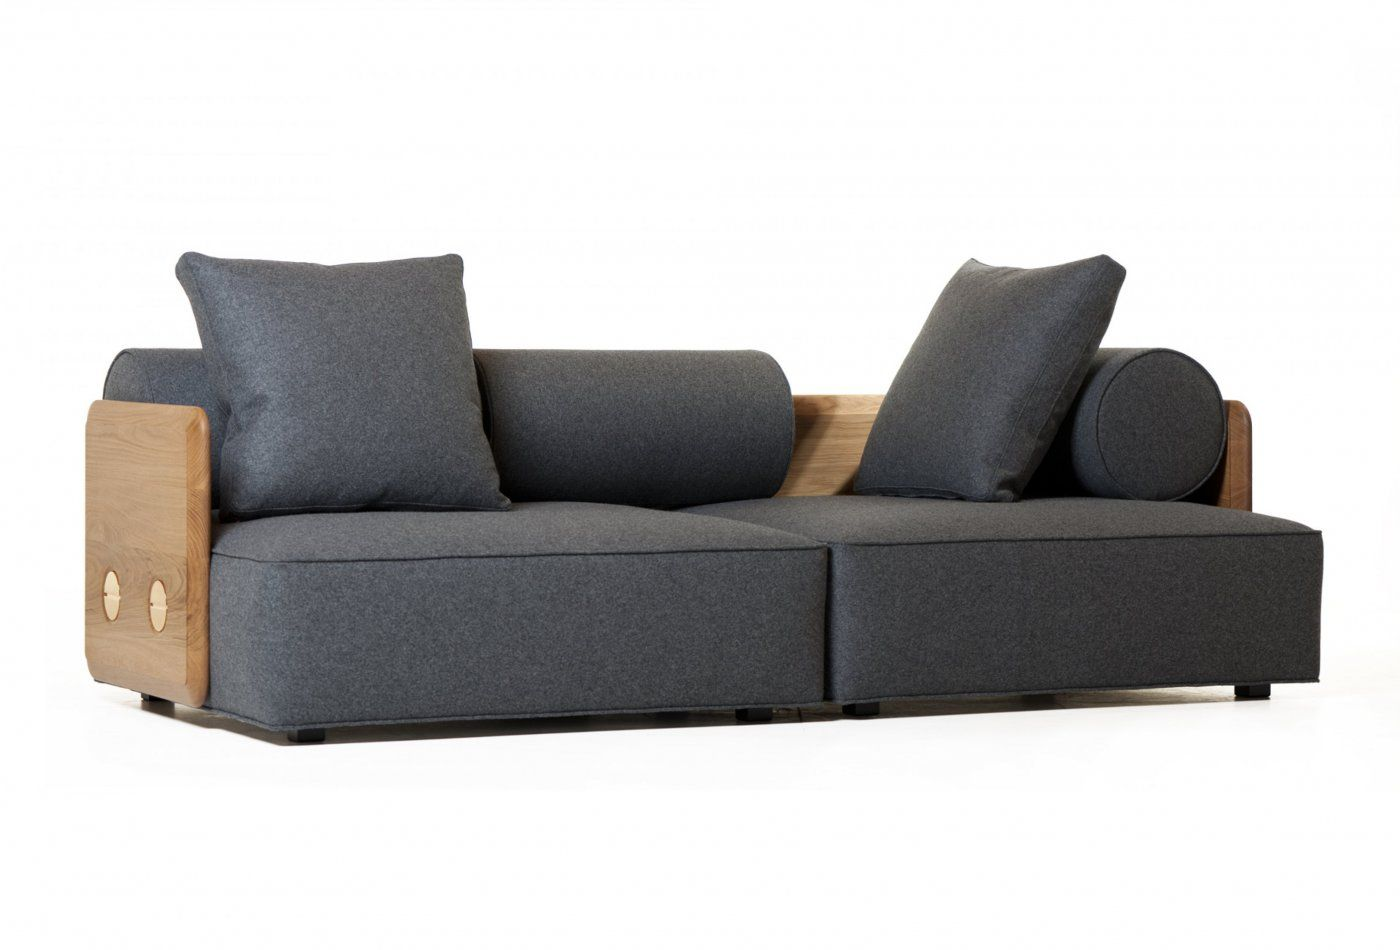 10 High End And Handsome Contemporary Sofas Trendy Sofas Sofa Design Contemporary Furniture Design